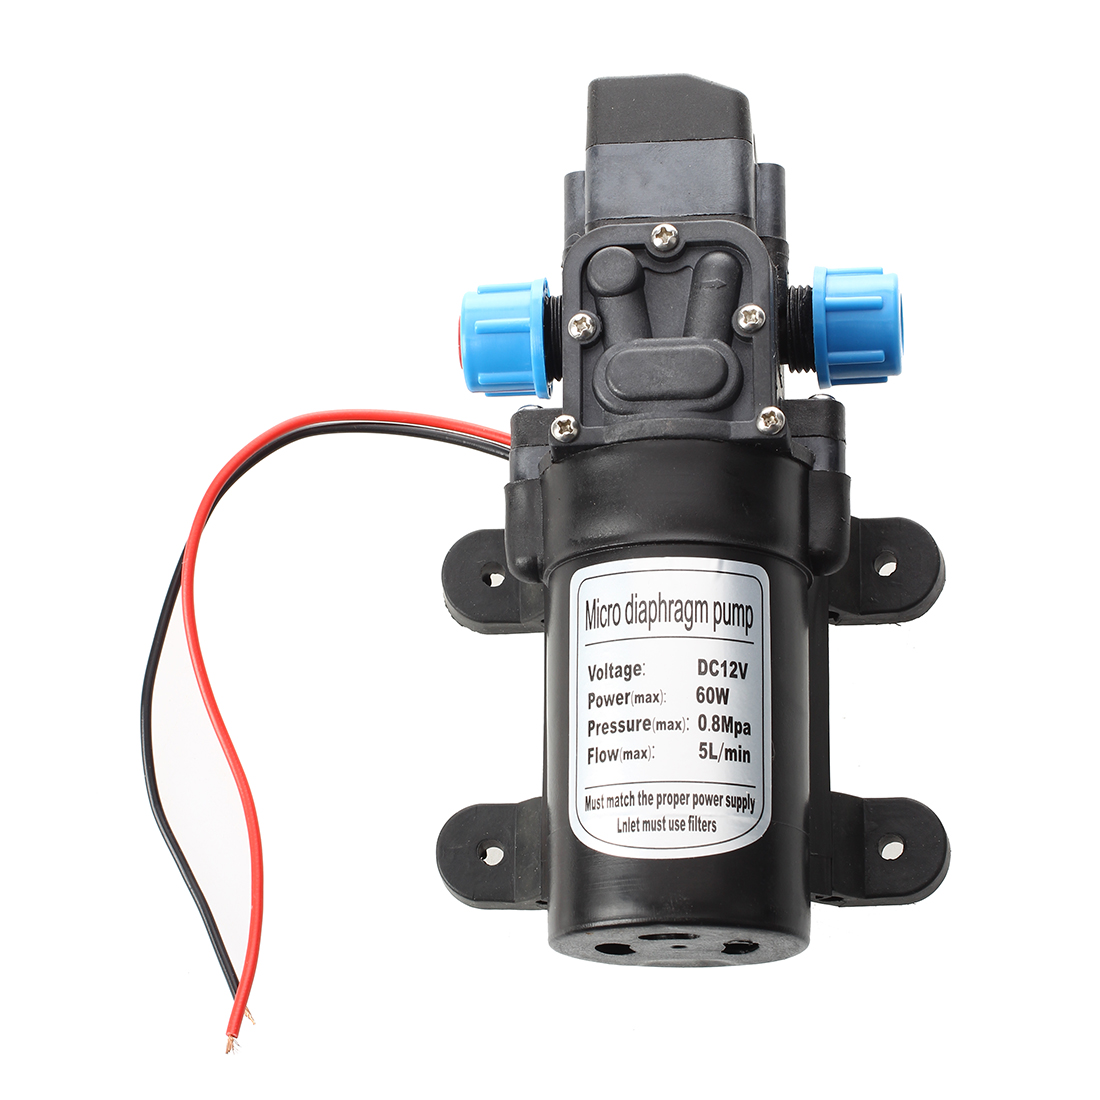 Black DC 12V 60W high-pressure mini membrane water pump automatic shutdown 5L / min